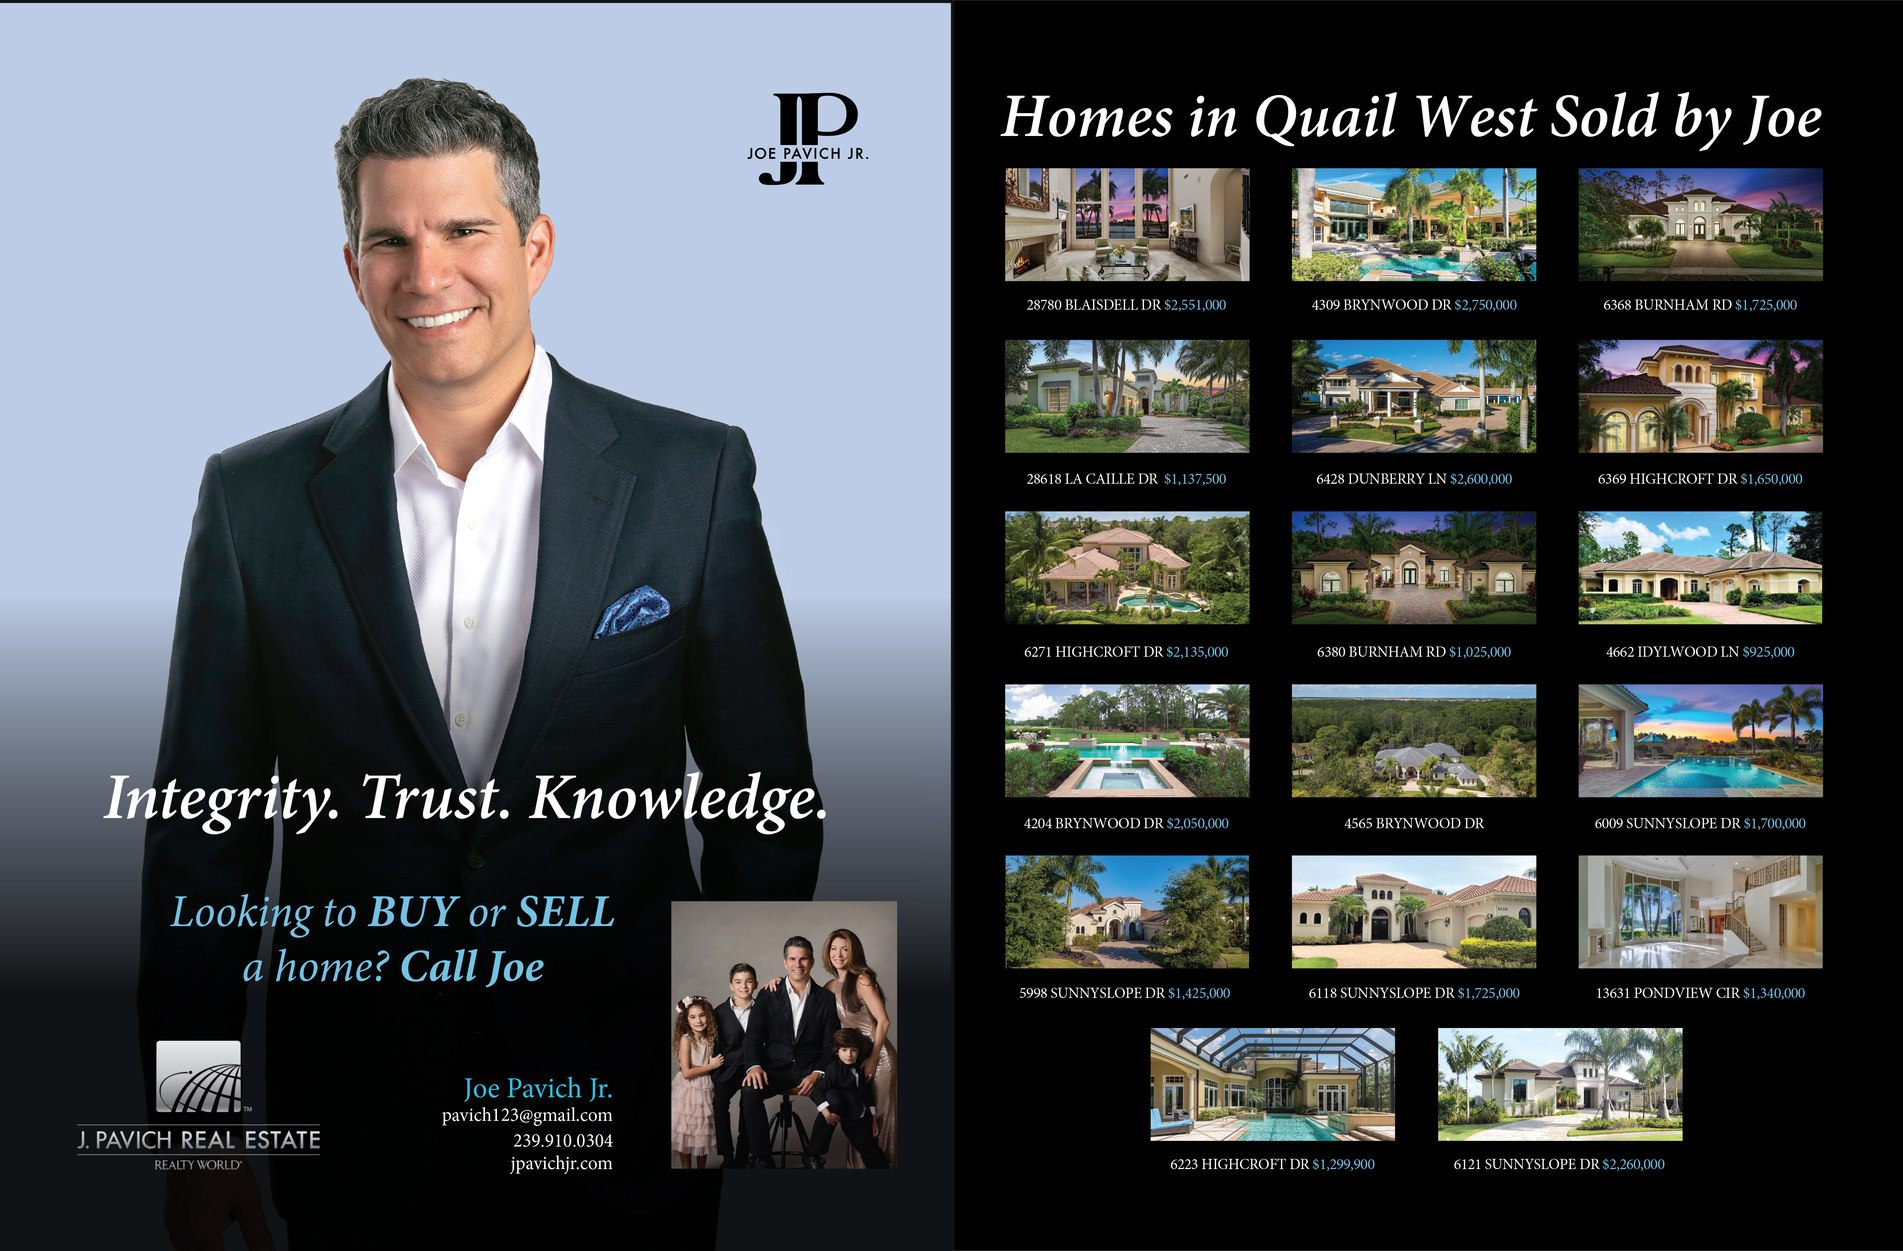 Homes in Quail West sold by Joe Pavich